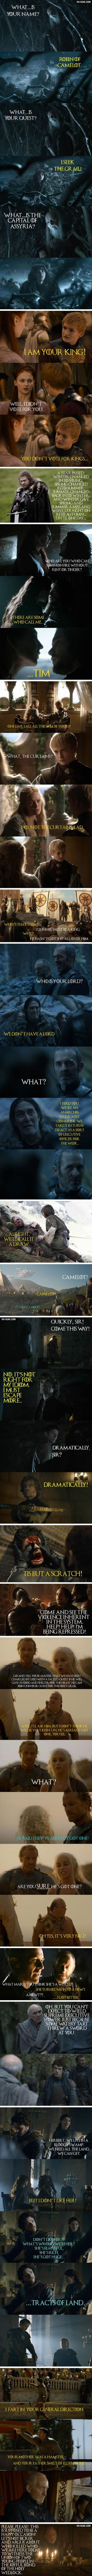 """""""Game Of Thrones"""" Moments Mashuped With """"Monty Python And The Holy Grail"""" Quotes - 9GAG"""